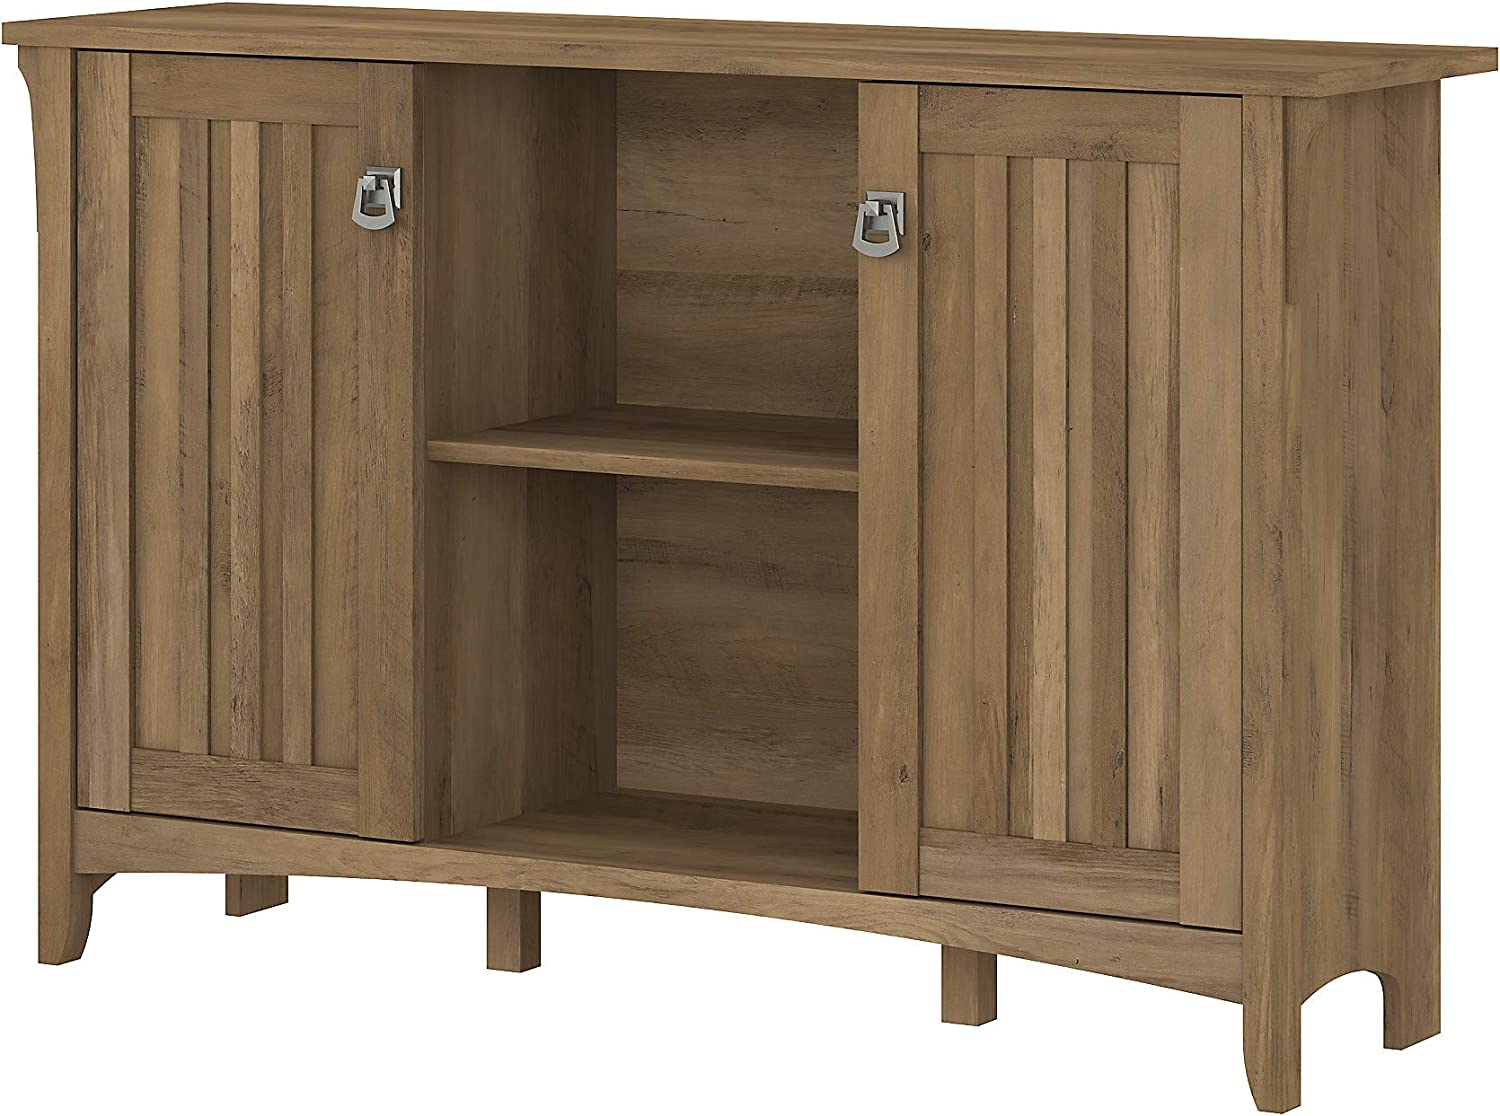 Bush Furniture Salinas Accent Storage Cabinet with Doors in Reclaimed Pine